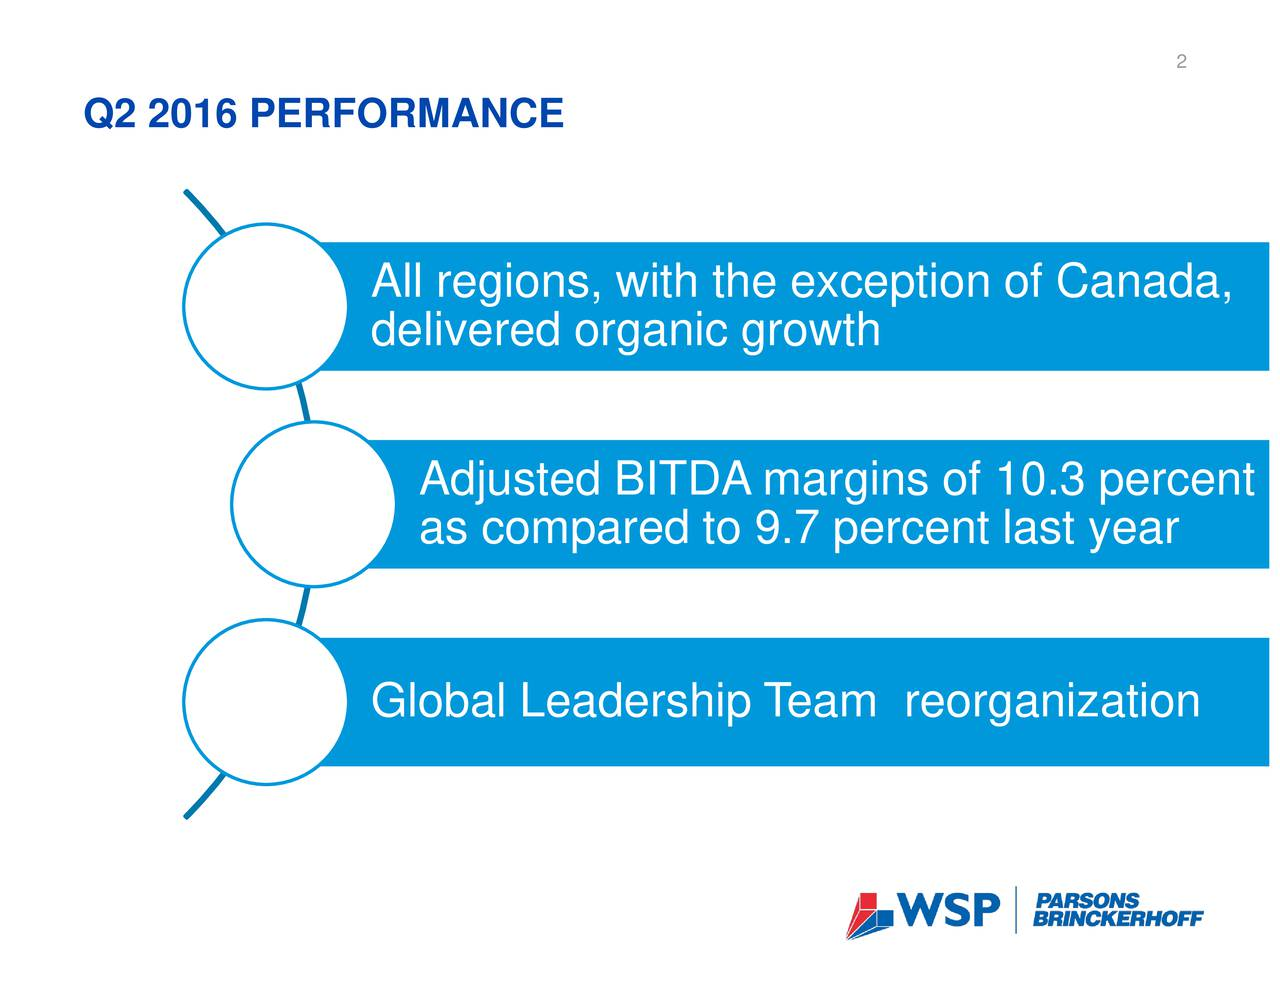 Q2 2016 PERFORMANCE All regions, with the exception of Canada, delivered organic growth Adjusted BITDA margins of 10.3 percent as compared to 9.7 percent last year Global Leadership T eam reorganization